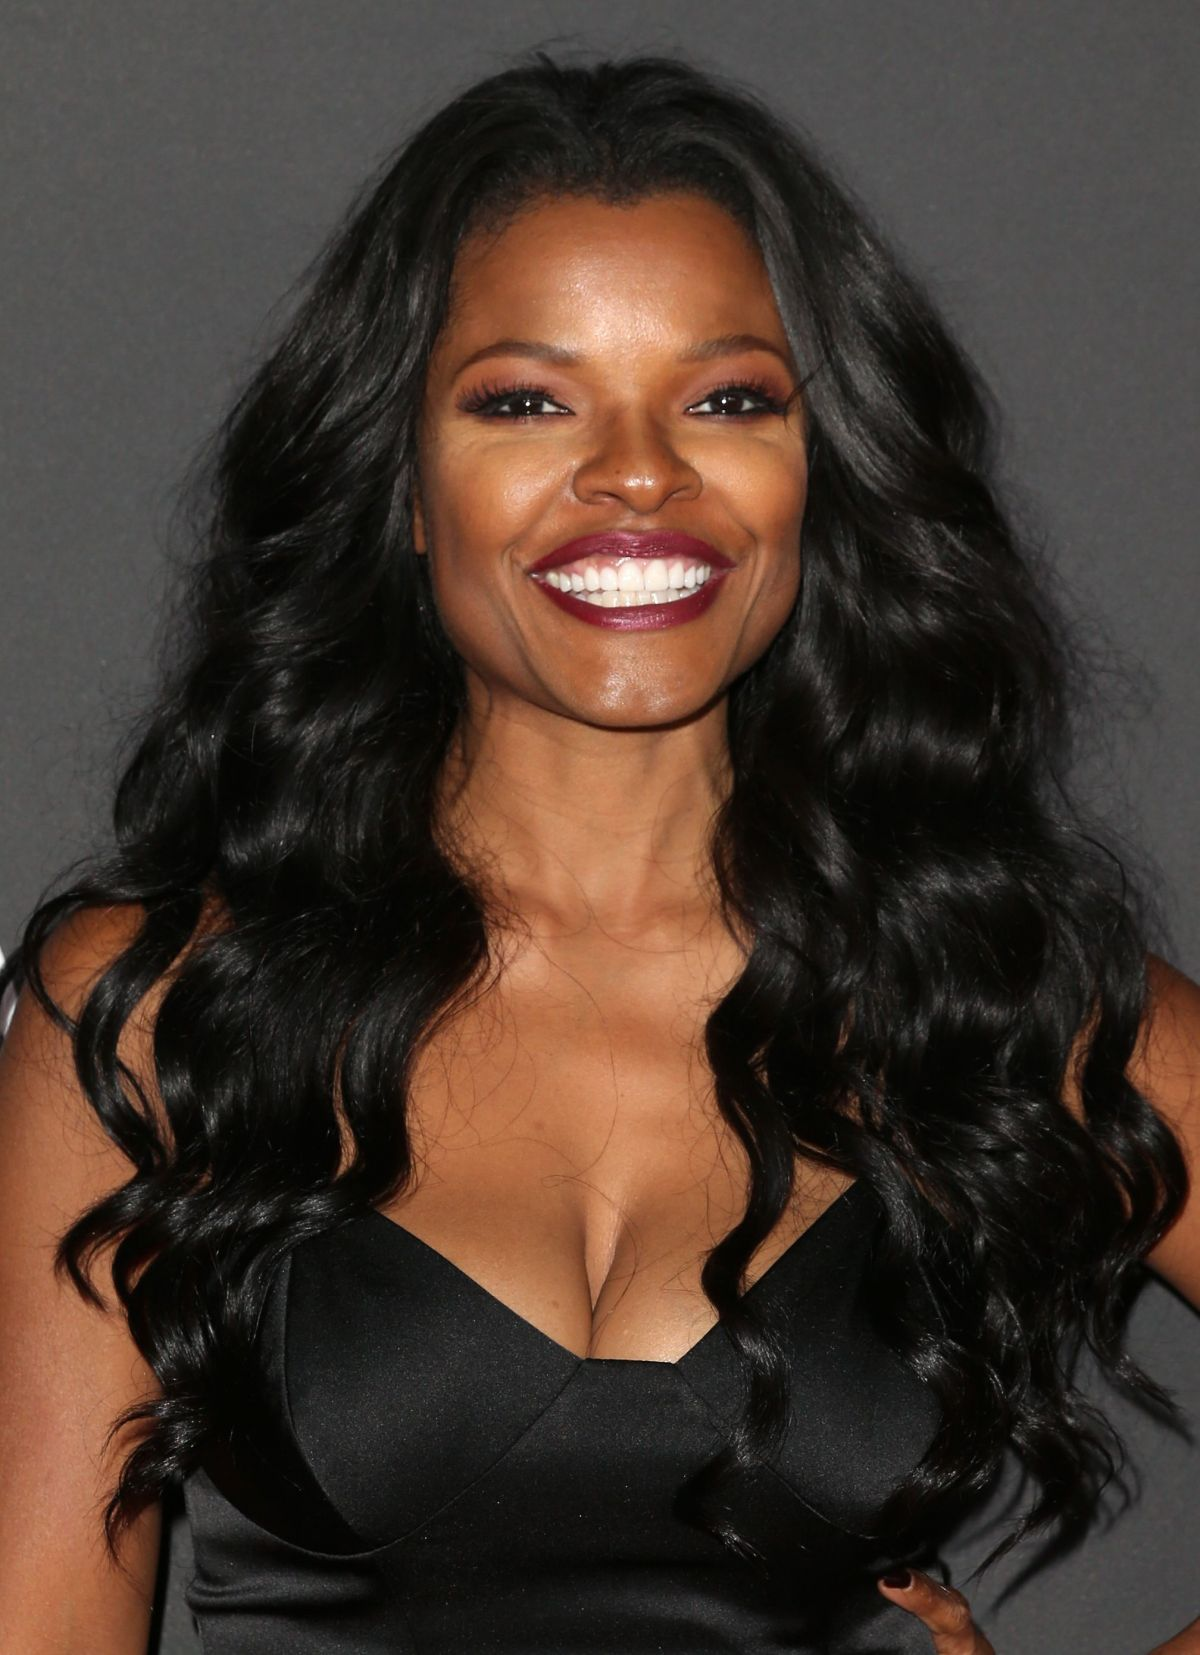 The 45-year old daughter of father (?) and mother(?), 160 cm tall Keesha Sharp in 2018 photo